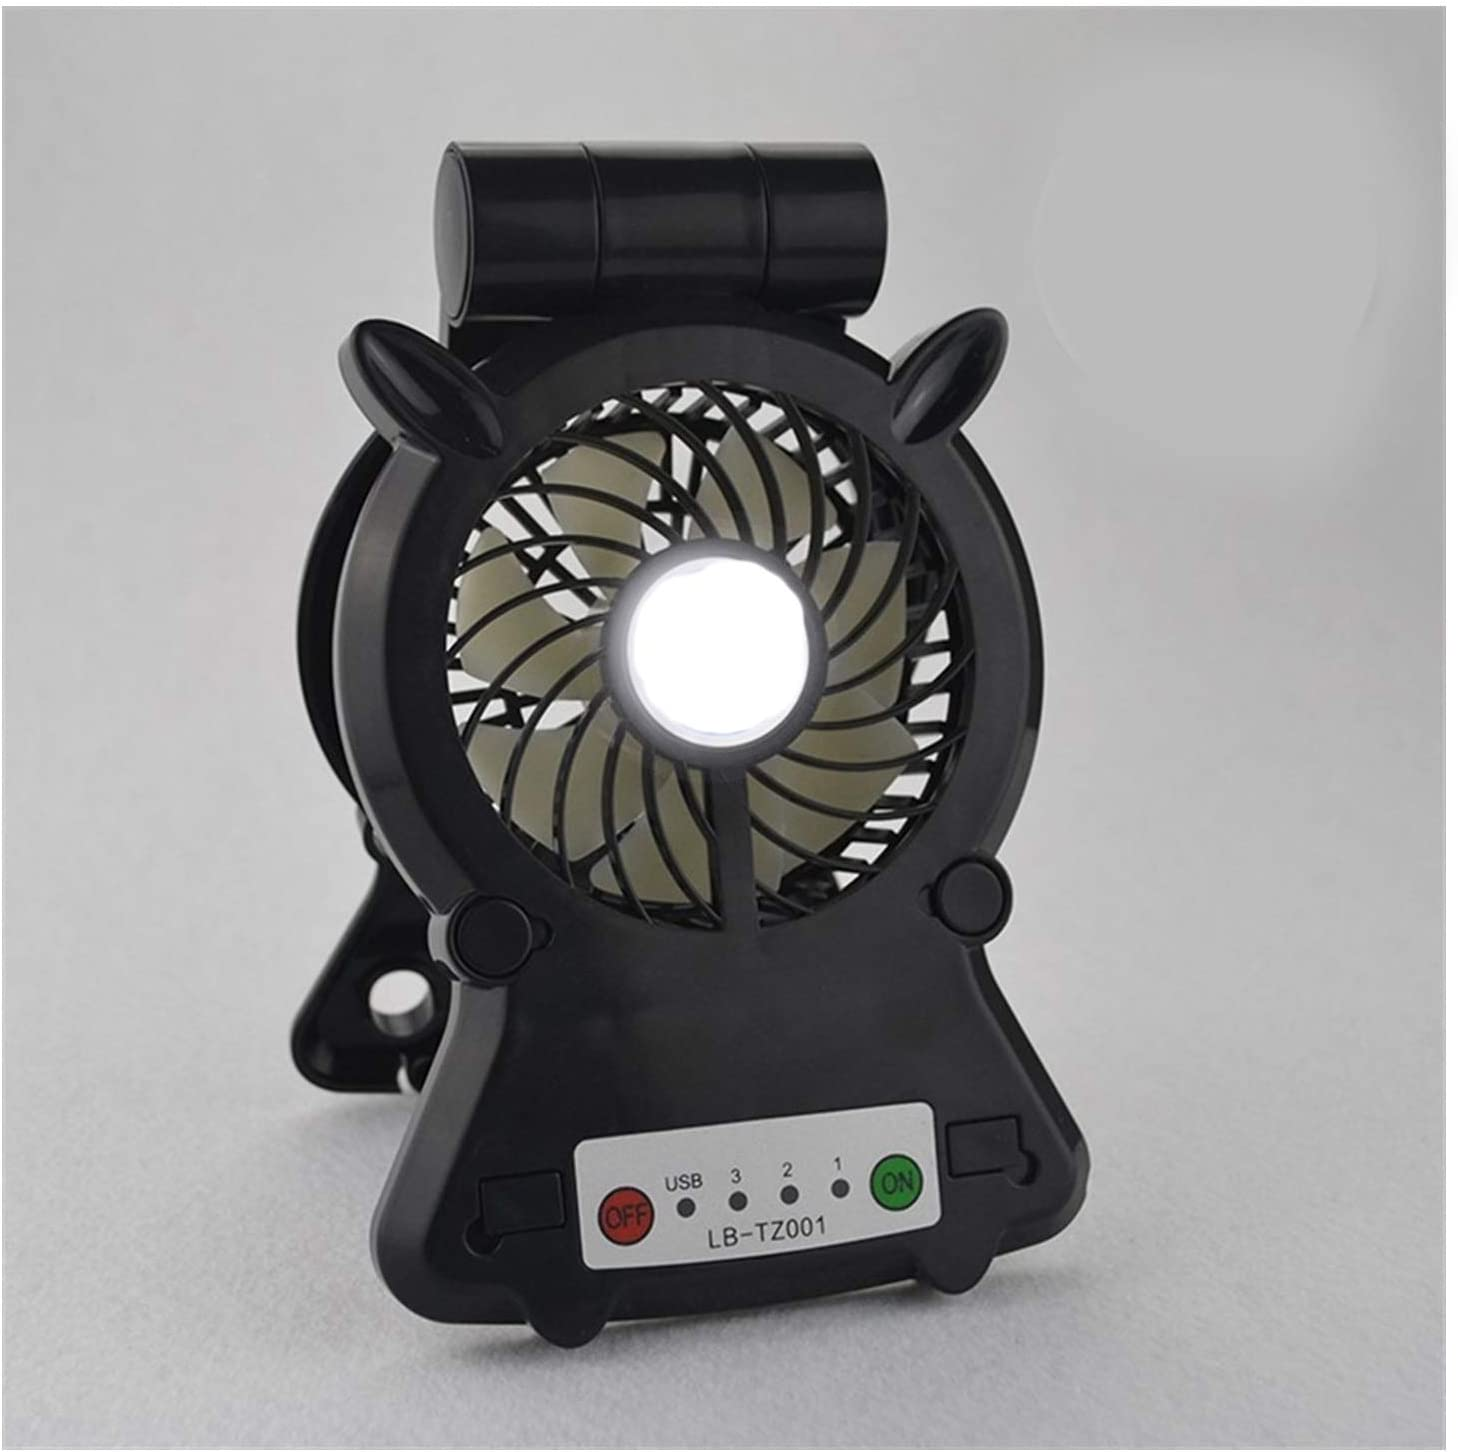 HAIMEI-WU Adjustable Angle Table Fan USB Portable Desktop Round Galvanic Fan Led Promiscuous Phone Holder Fans Home Mini Electric Fan Color : 04